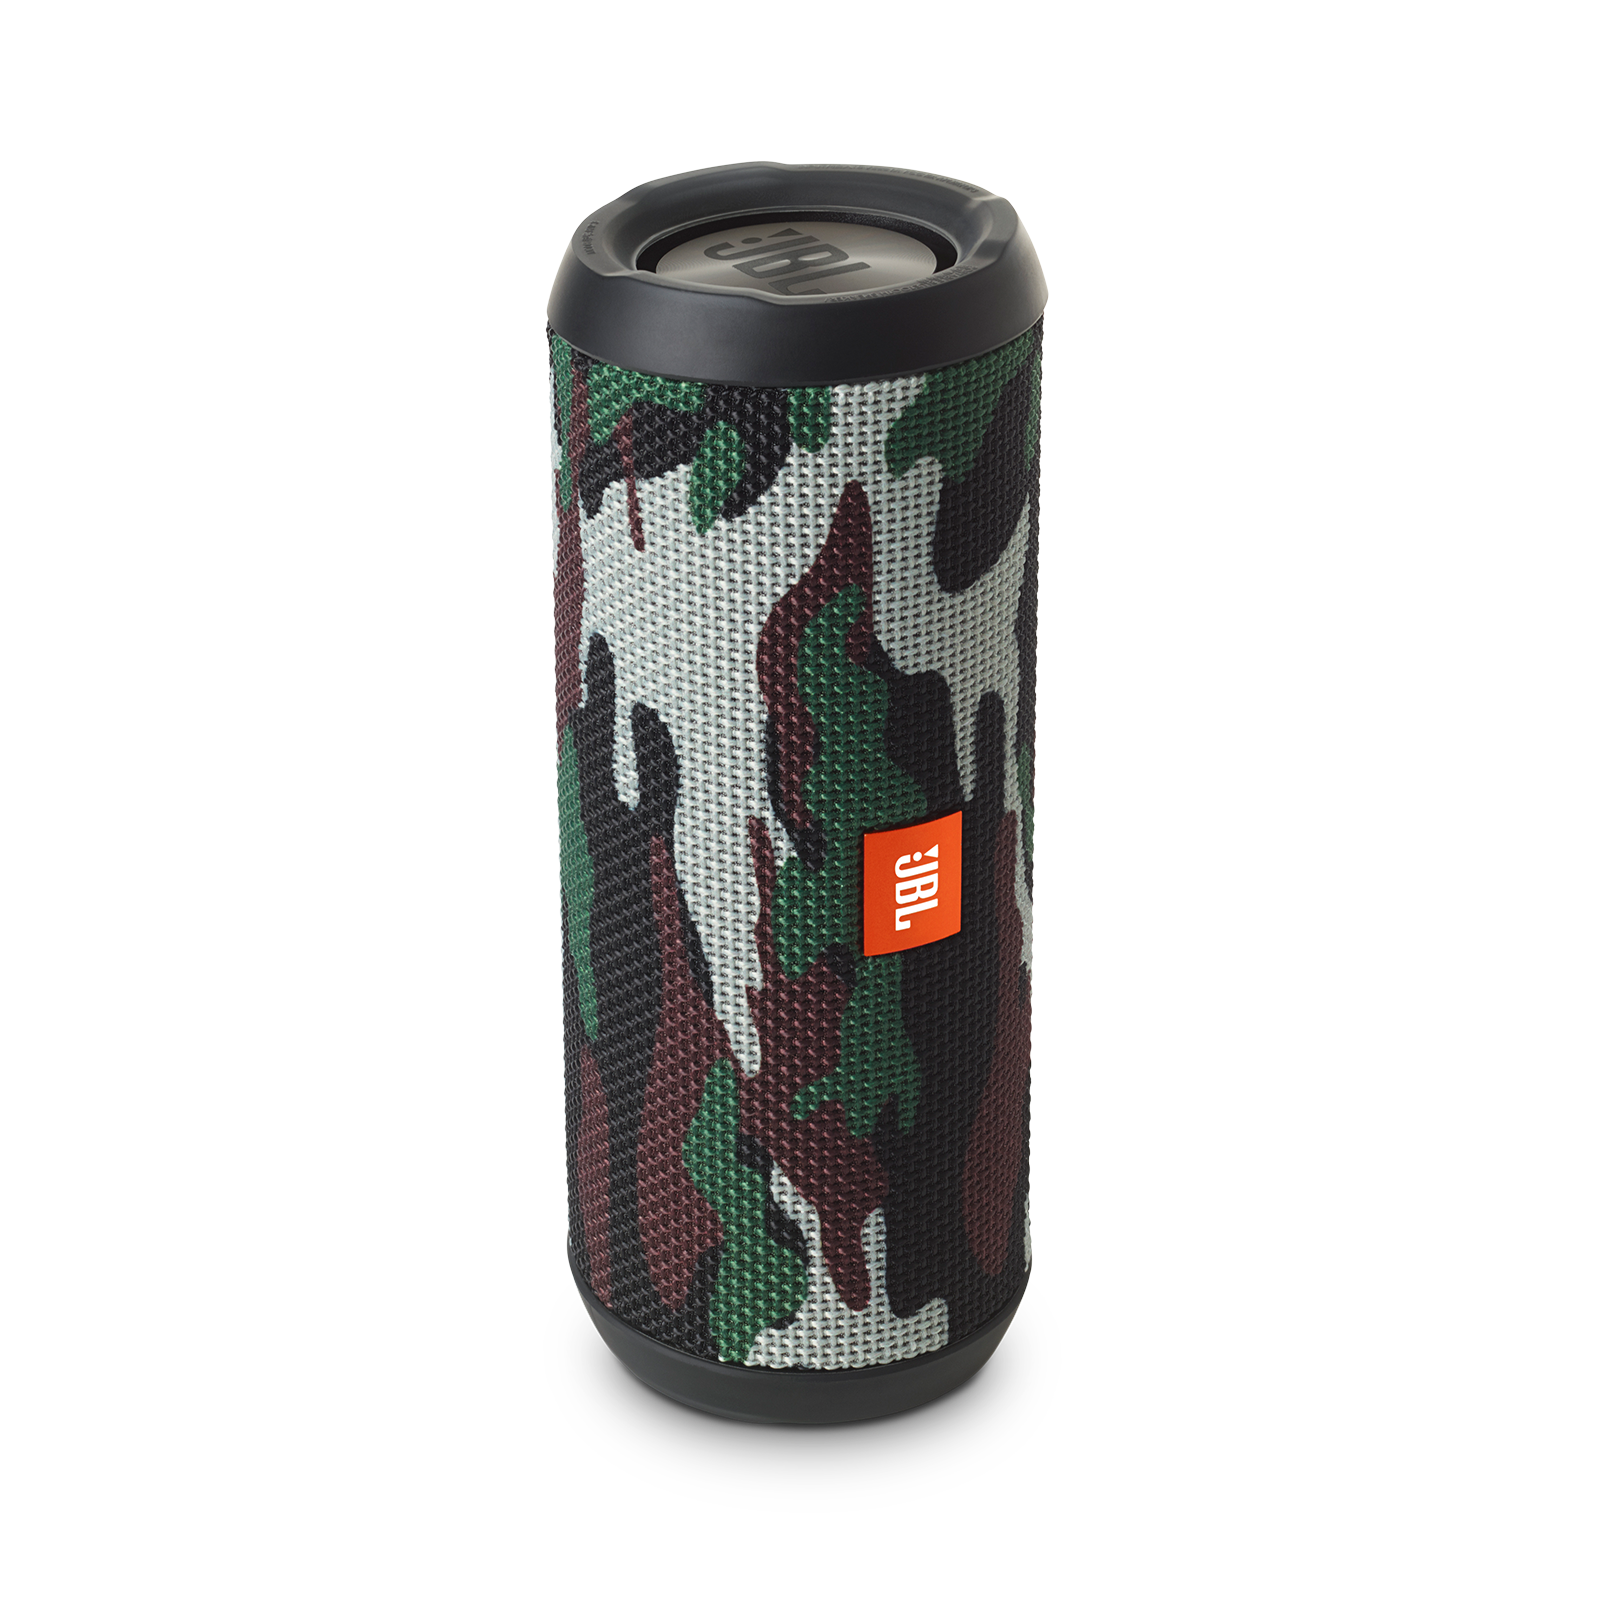 JBL Flip 3 Special Edition - Squad - Splashproof portable Bluetooth speaker with powerful sound and speakerphone technology - Hero